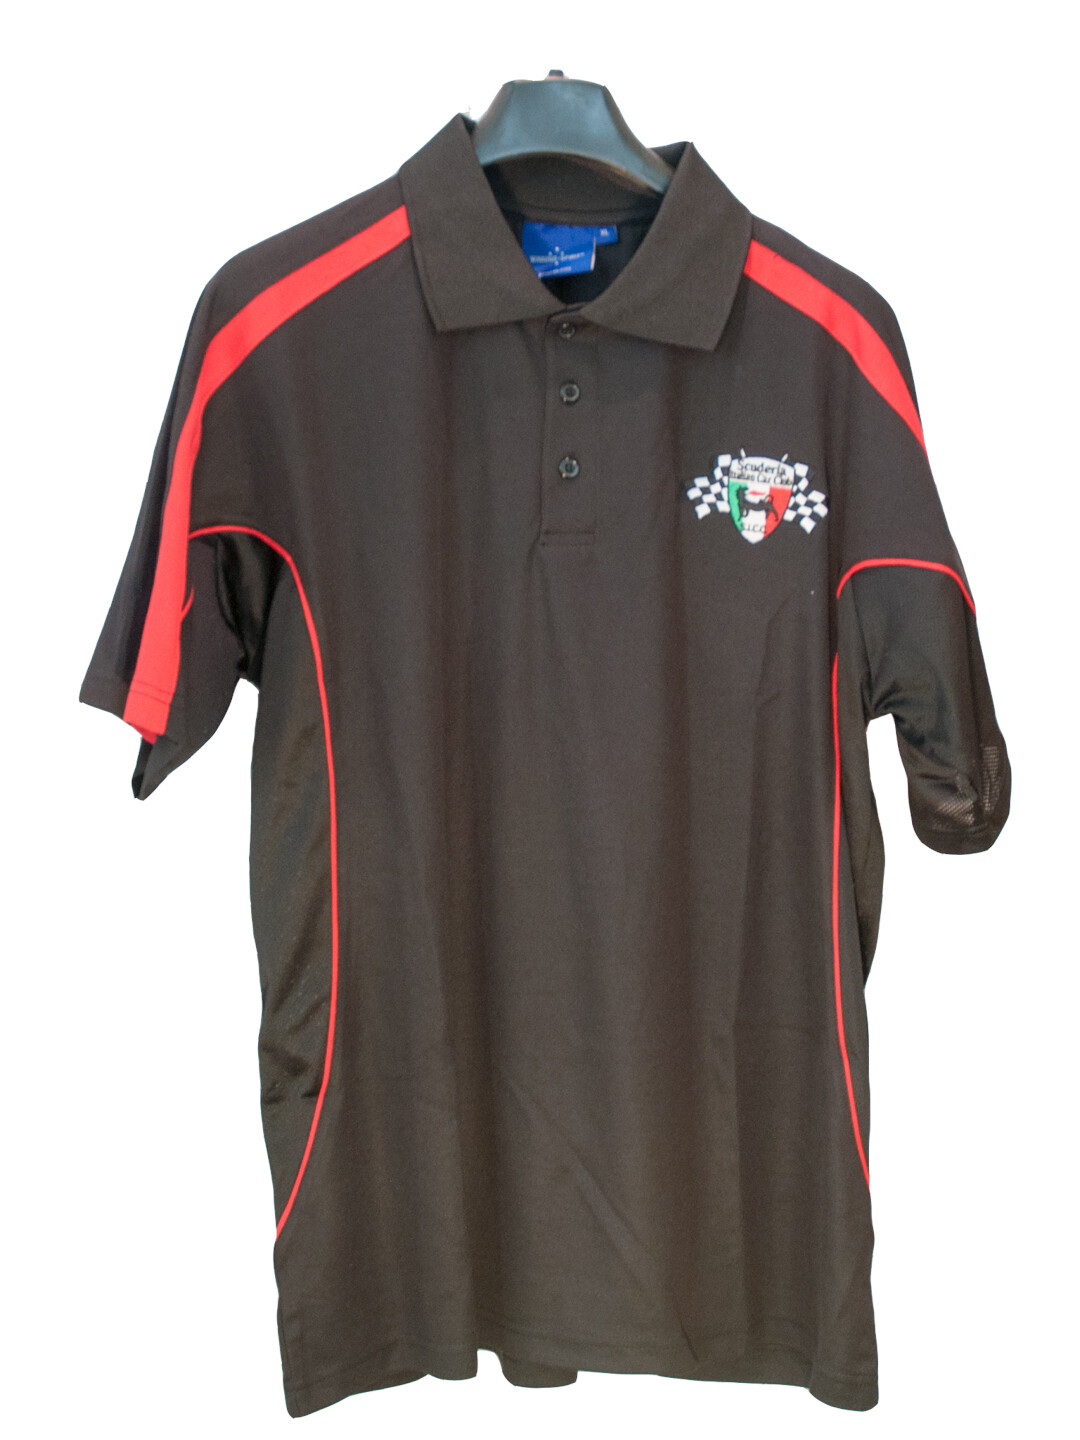 Club Polo (with logo)